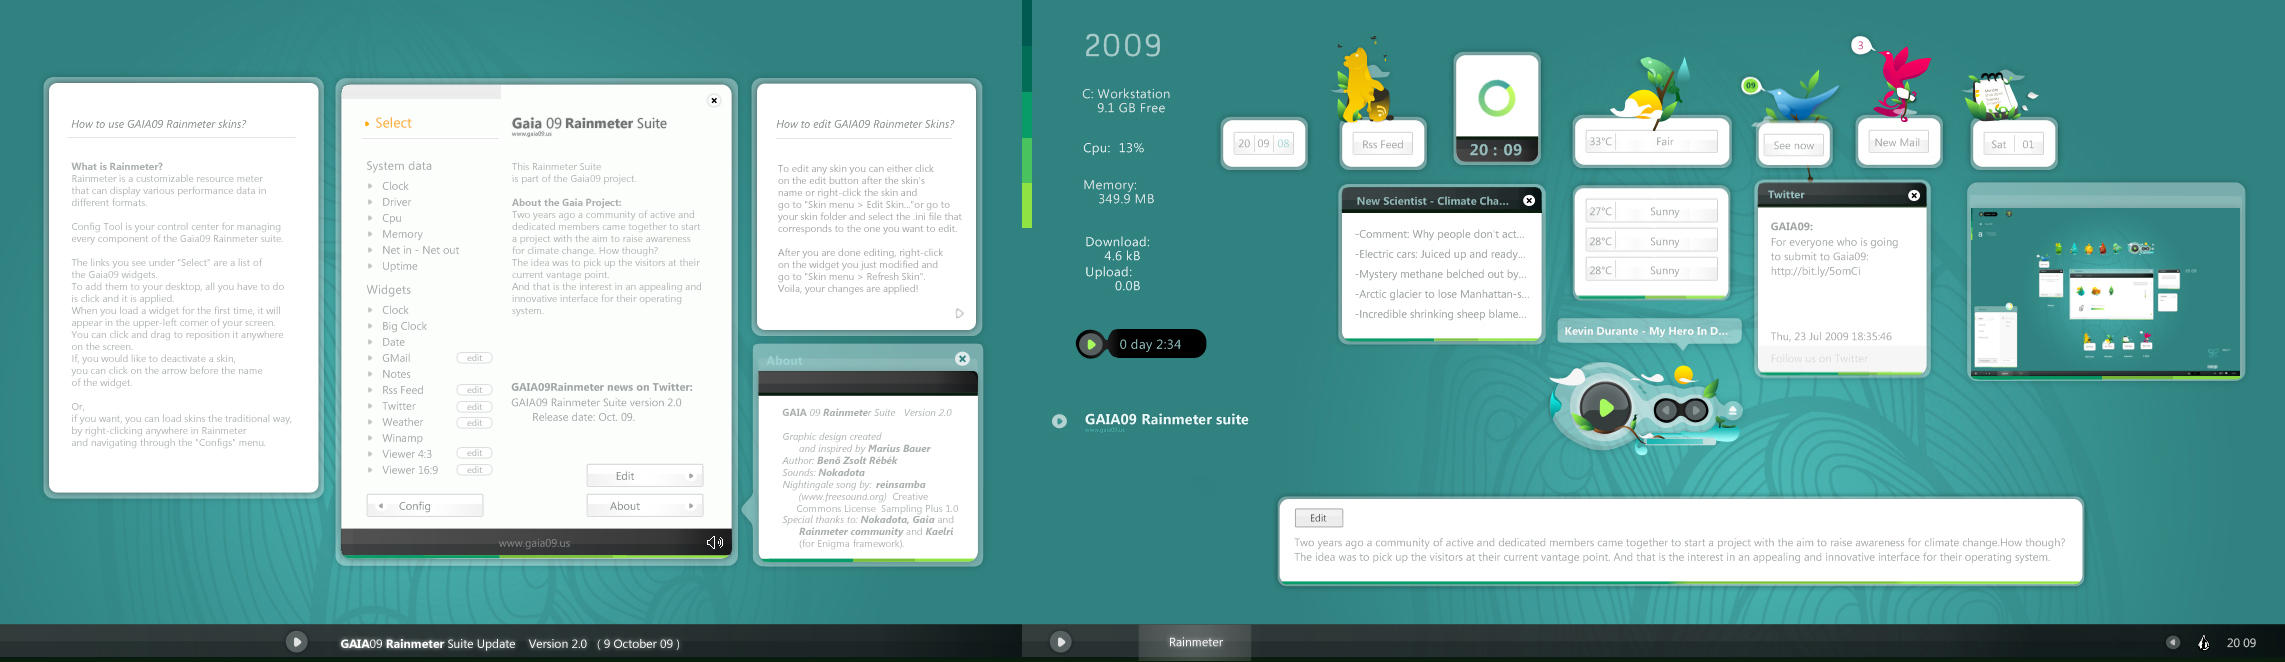 GAIA09 Rainmeter Suite v2.0 by reb70